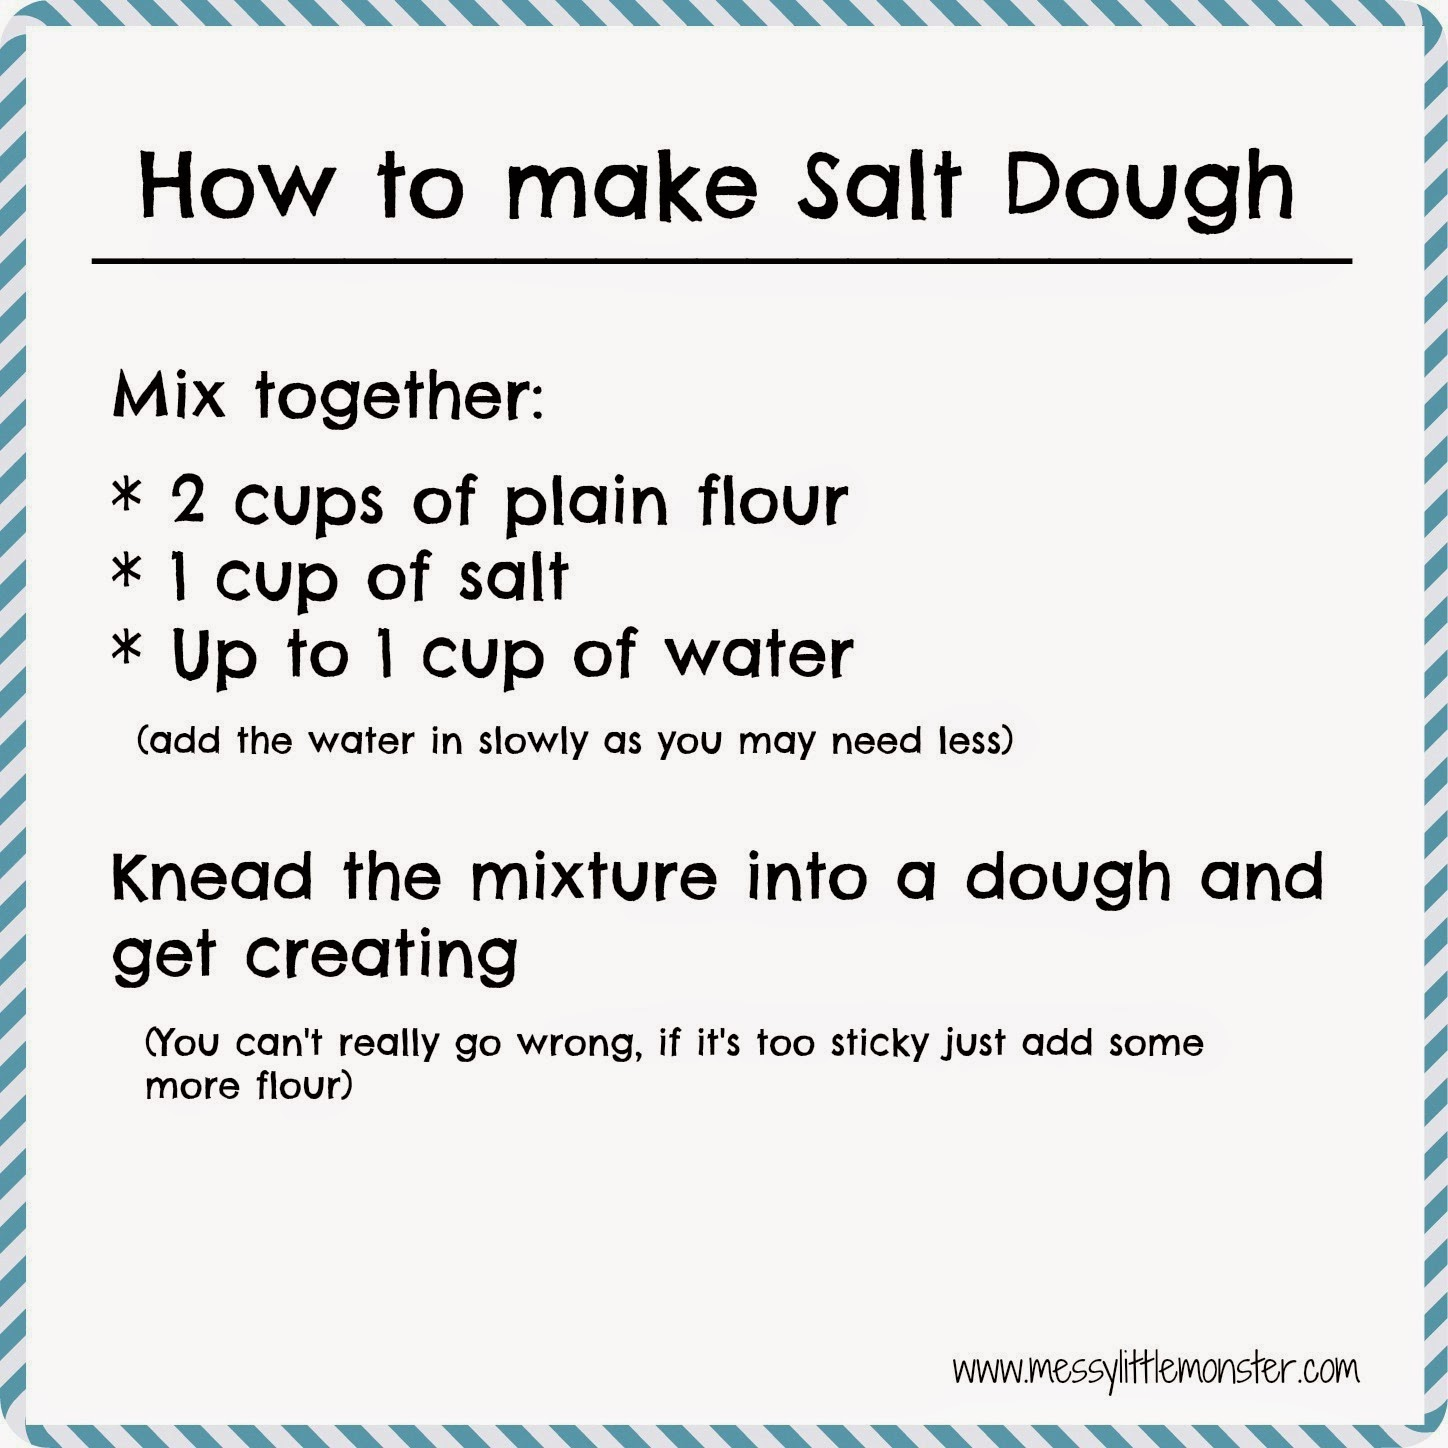 how to make salt dough - an easy salt dough recipe